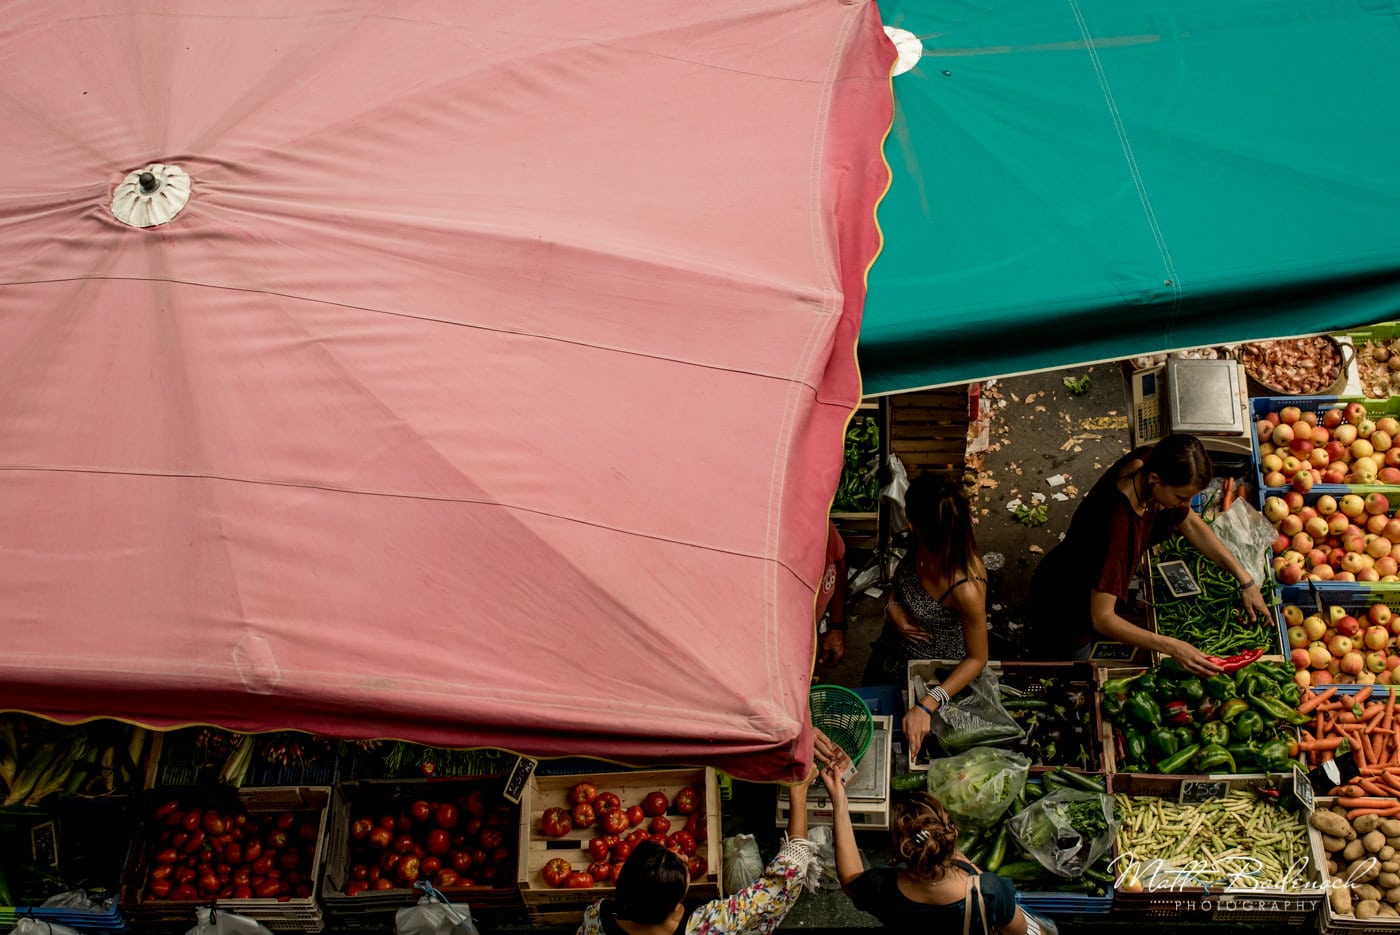 Food Market, | bordeaux street photography